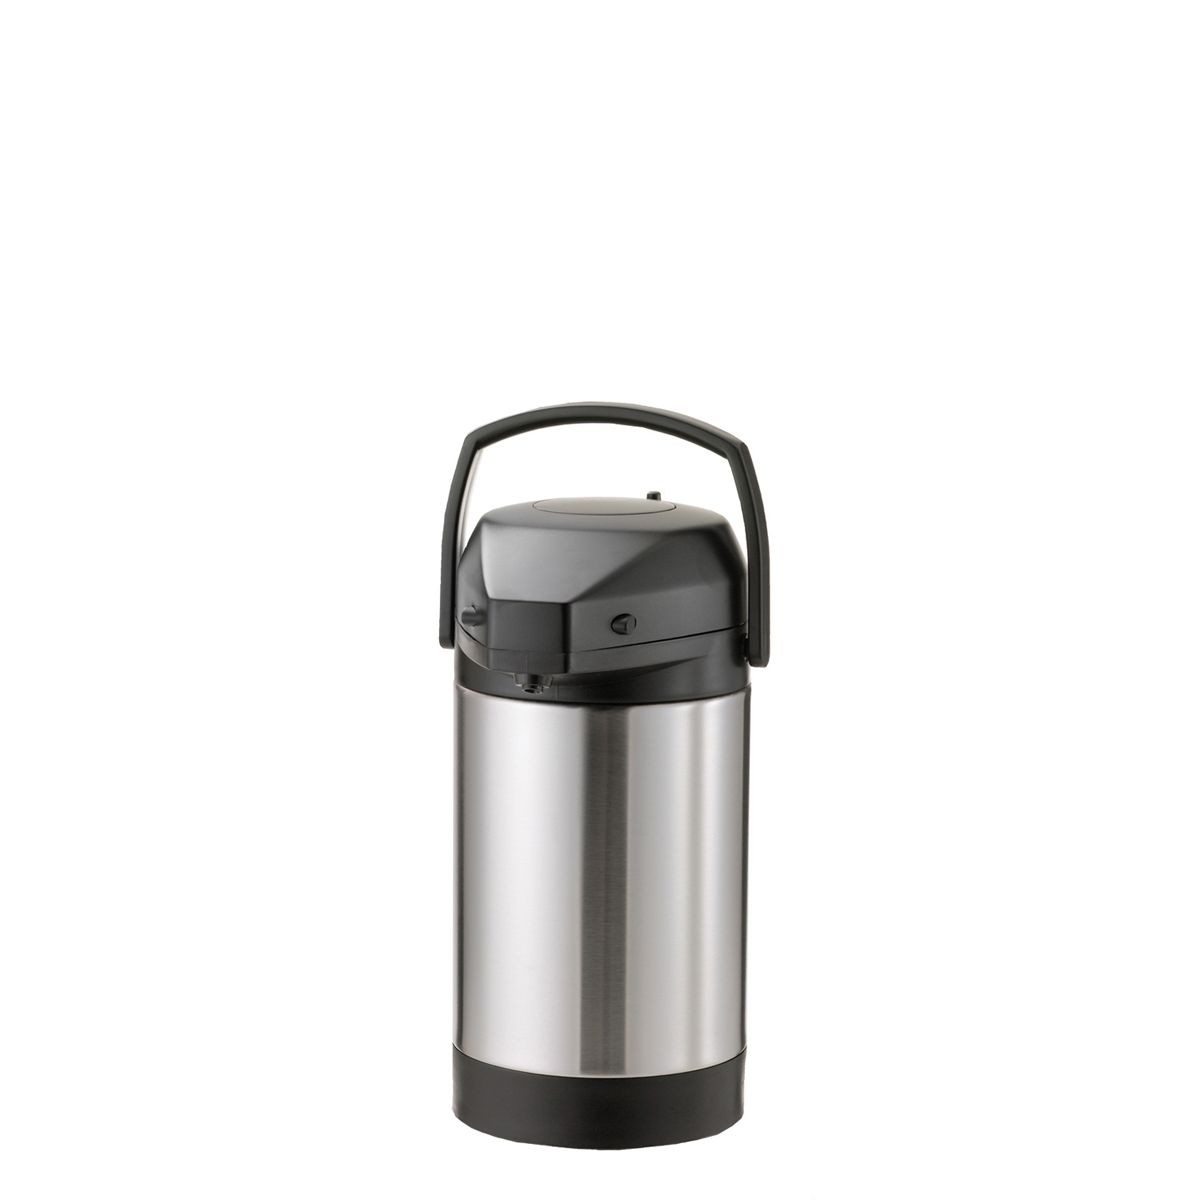 Service Ideas SVAP25P Economy Airpot with Interchangeable Pump Lid, Stainless 2.5 Liter